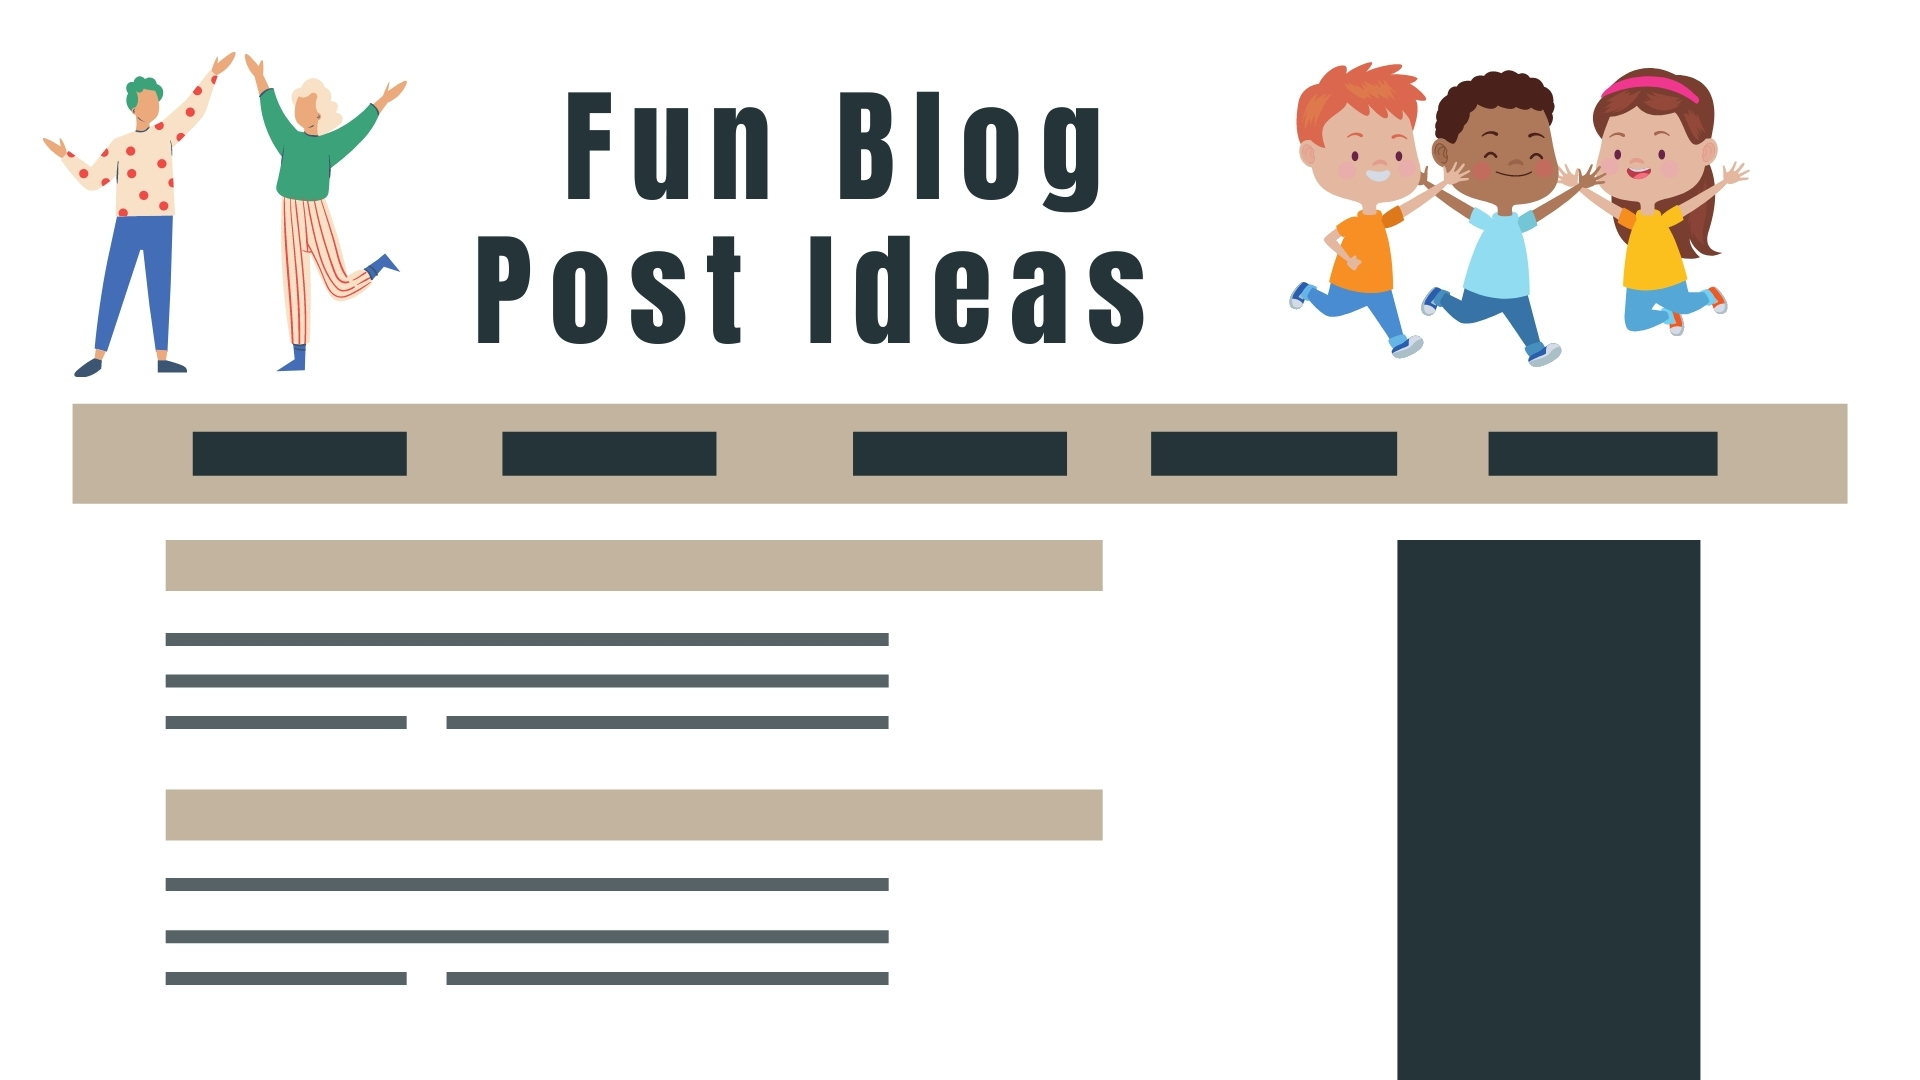 Fun Blog Post Ideas - Find Funny Blog Topic Ideas and Blog Post Ideas to Write About